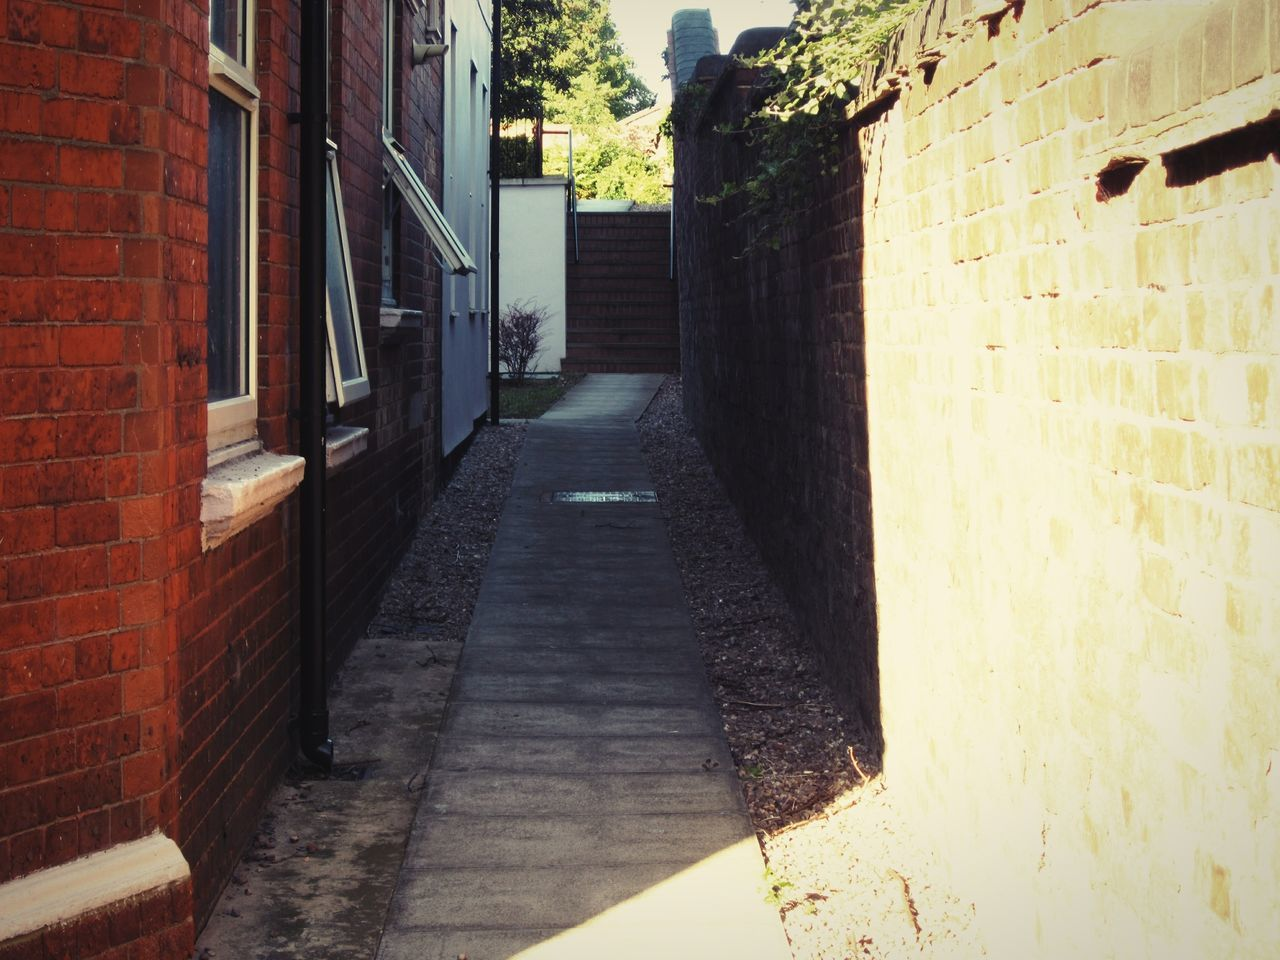 architecture, built structure, building exterior, brick wall, the way forward, day, no people, outdoors